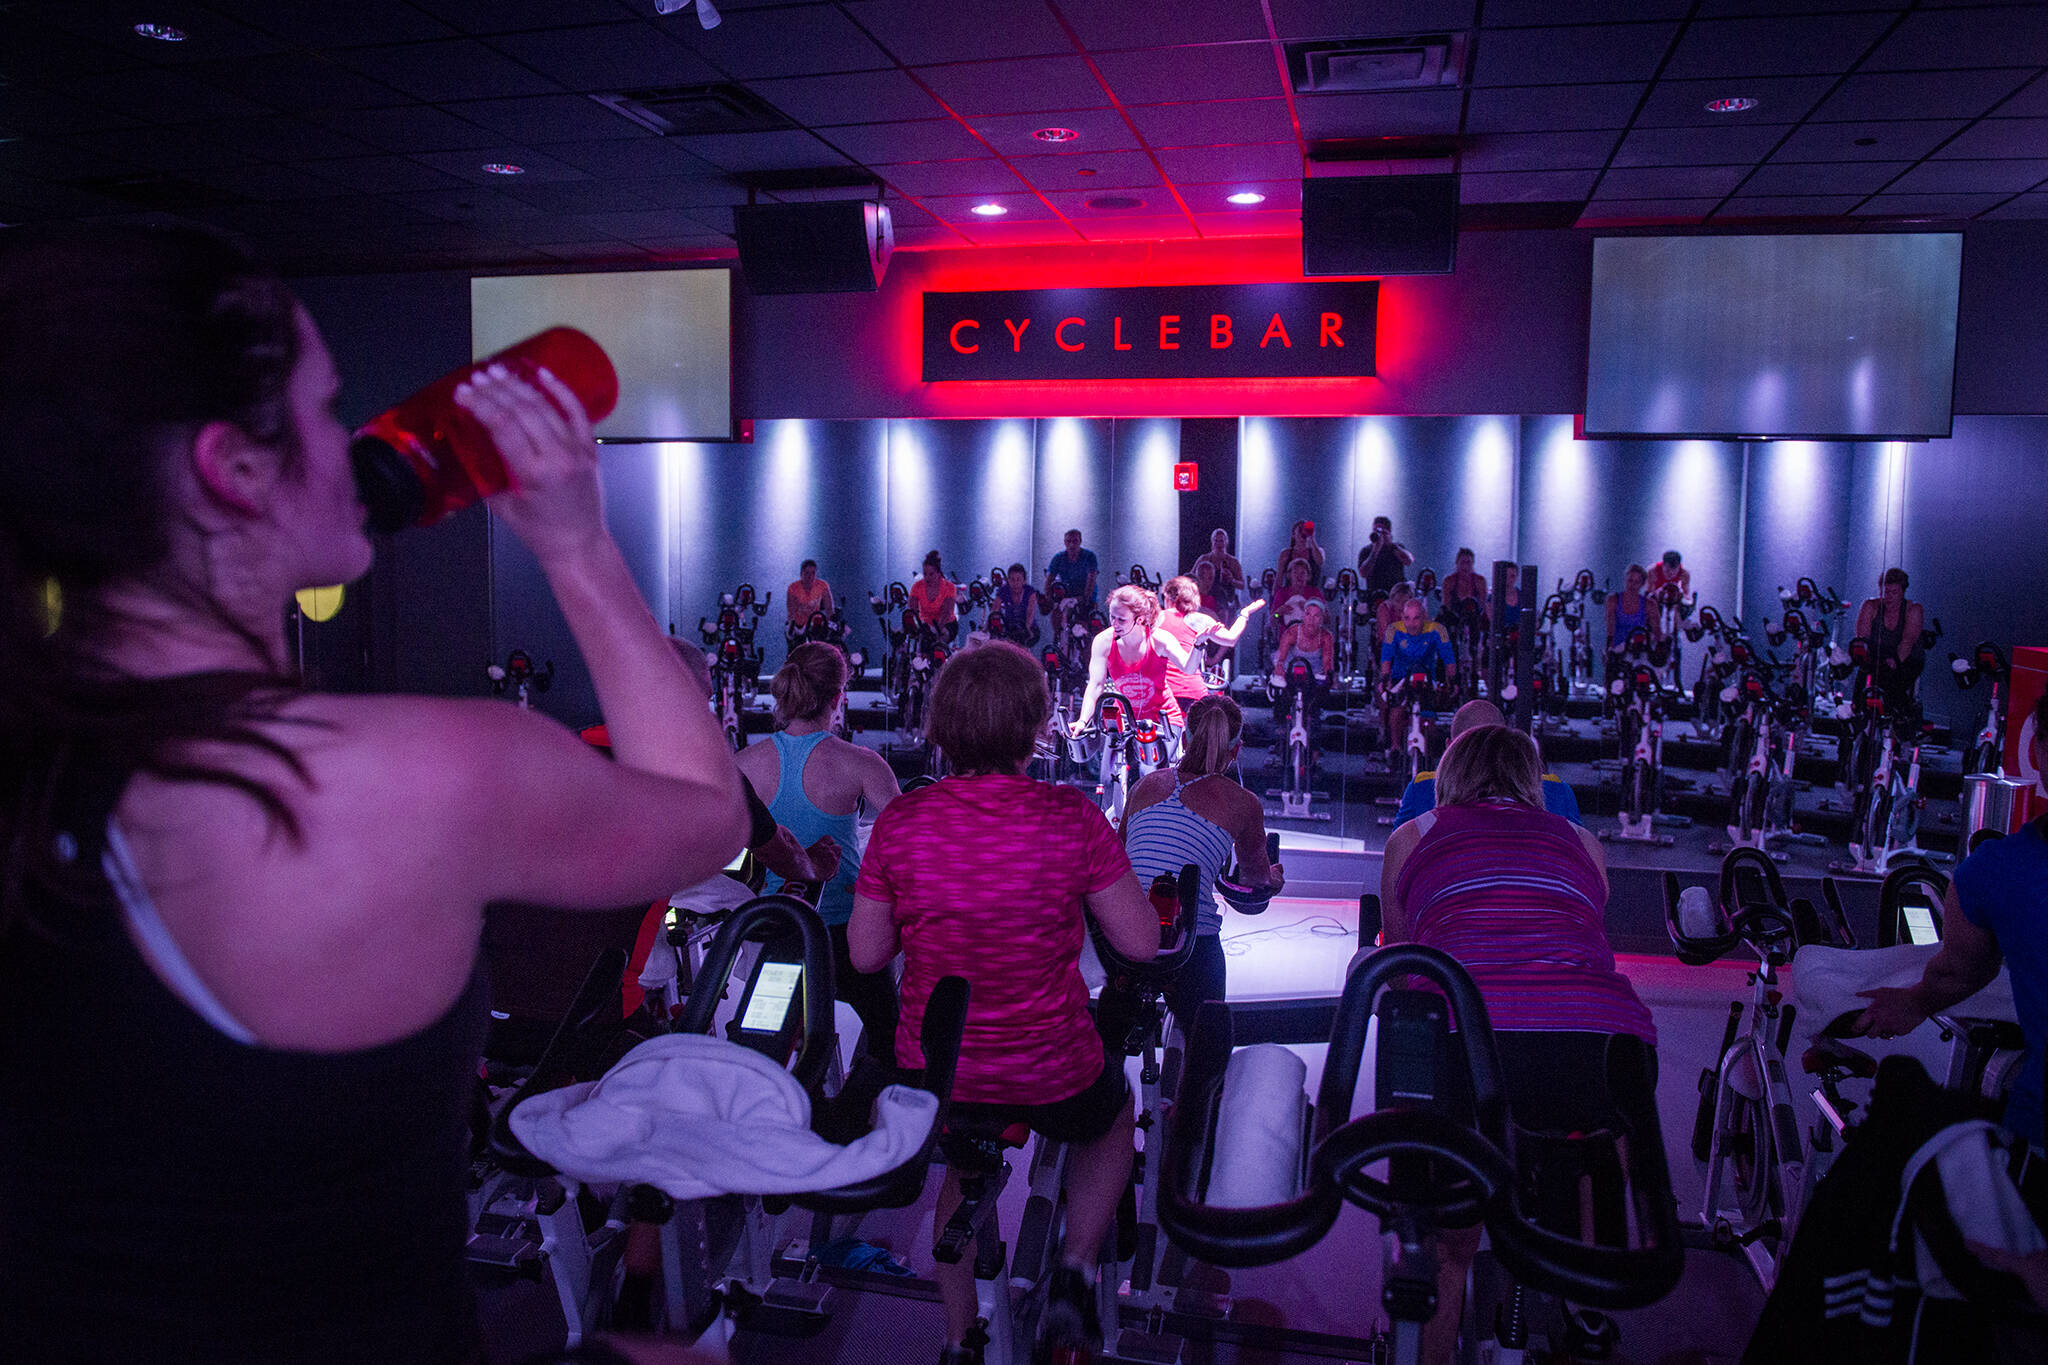 Cyclebar Leaside Blogto Toronto